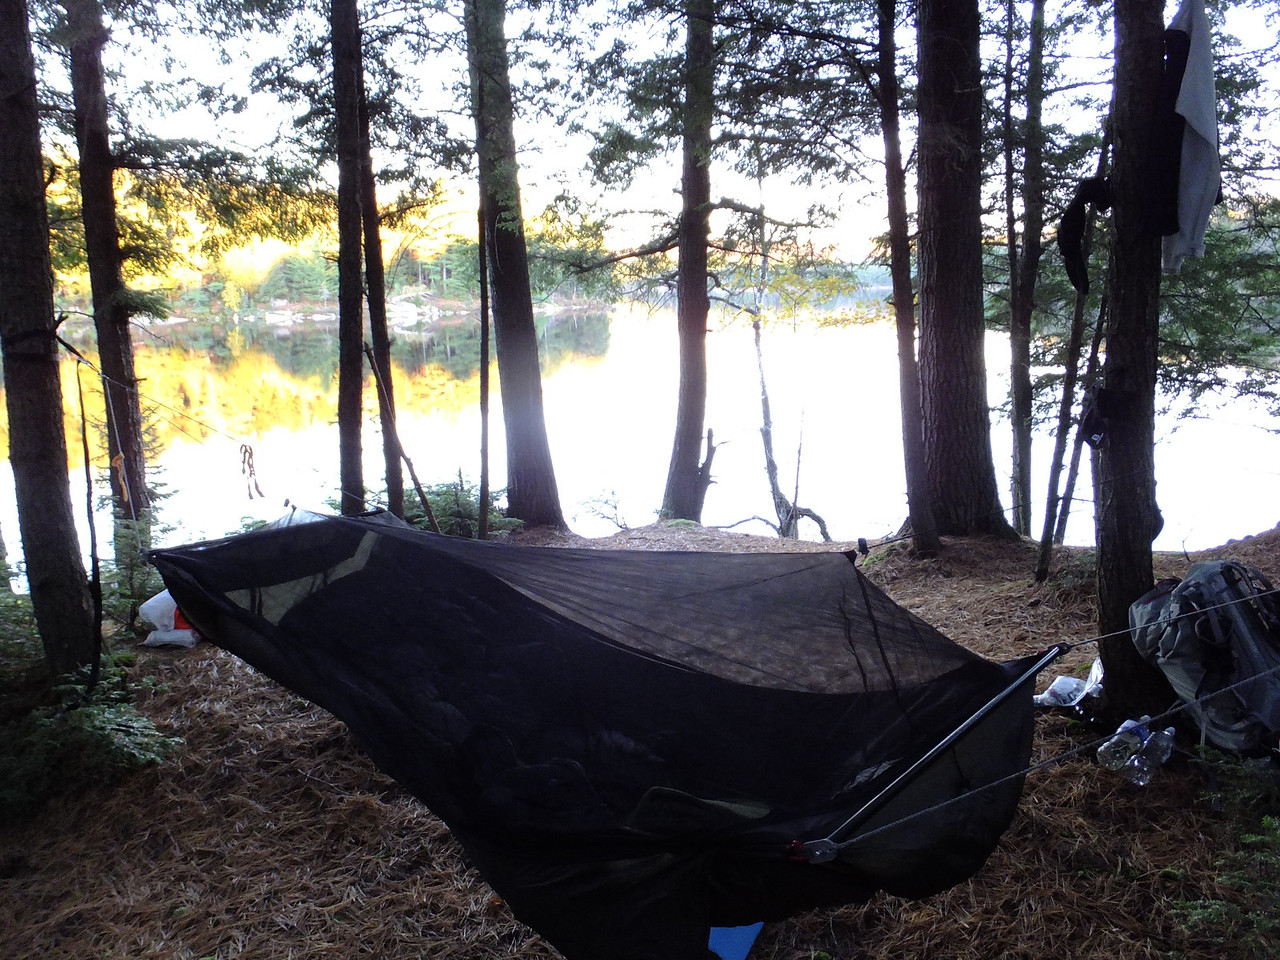 Set up my hammock as the sun was setting.  Bug  net is just to keep things from falling onto the ground. No bugs in October.